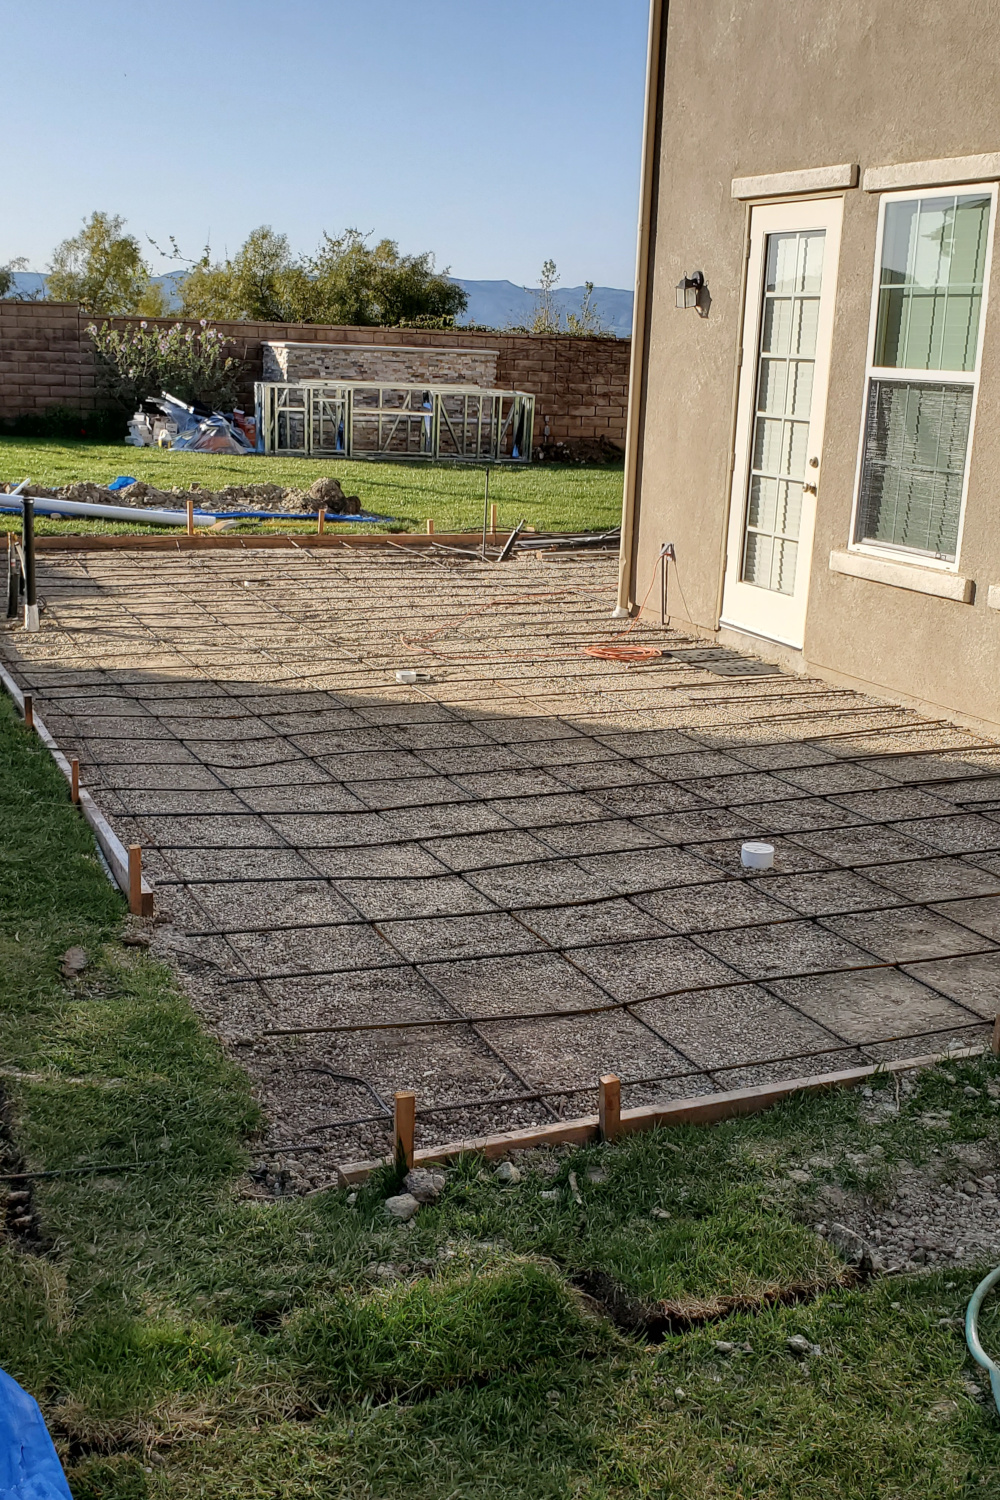 Concrete slab with rebar